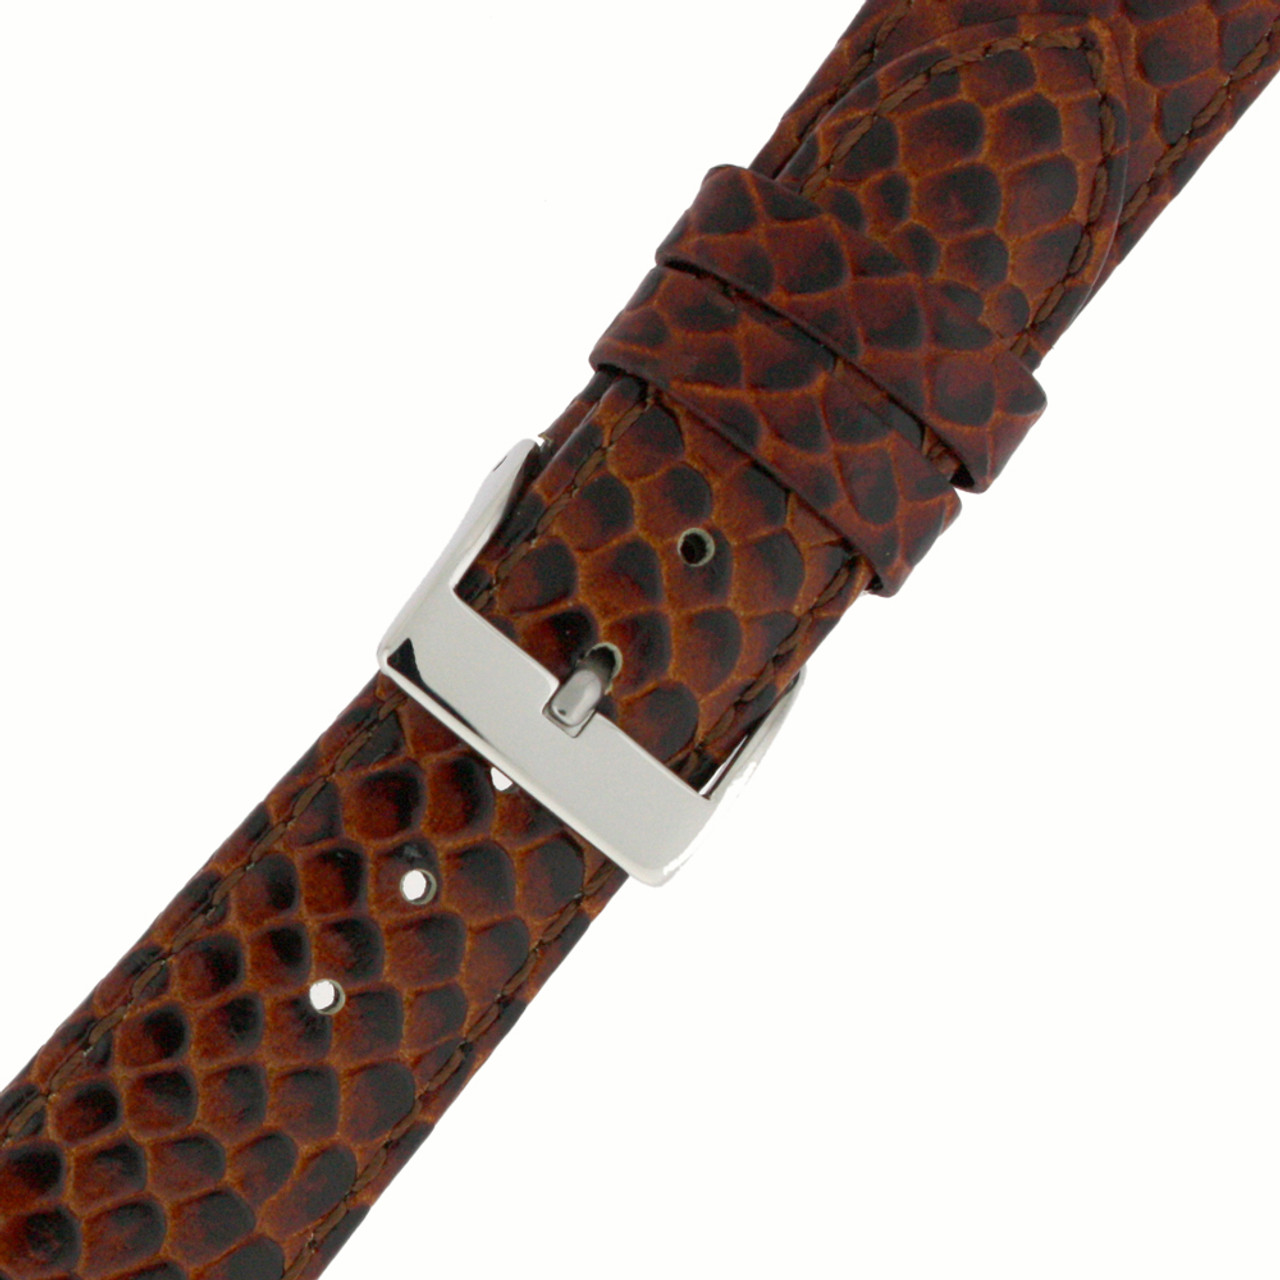 Genuine Leather Watch Band in Snake Grain and Quick Release - Buckle View